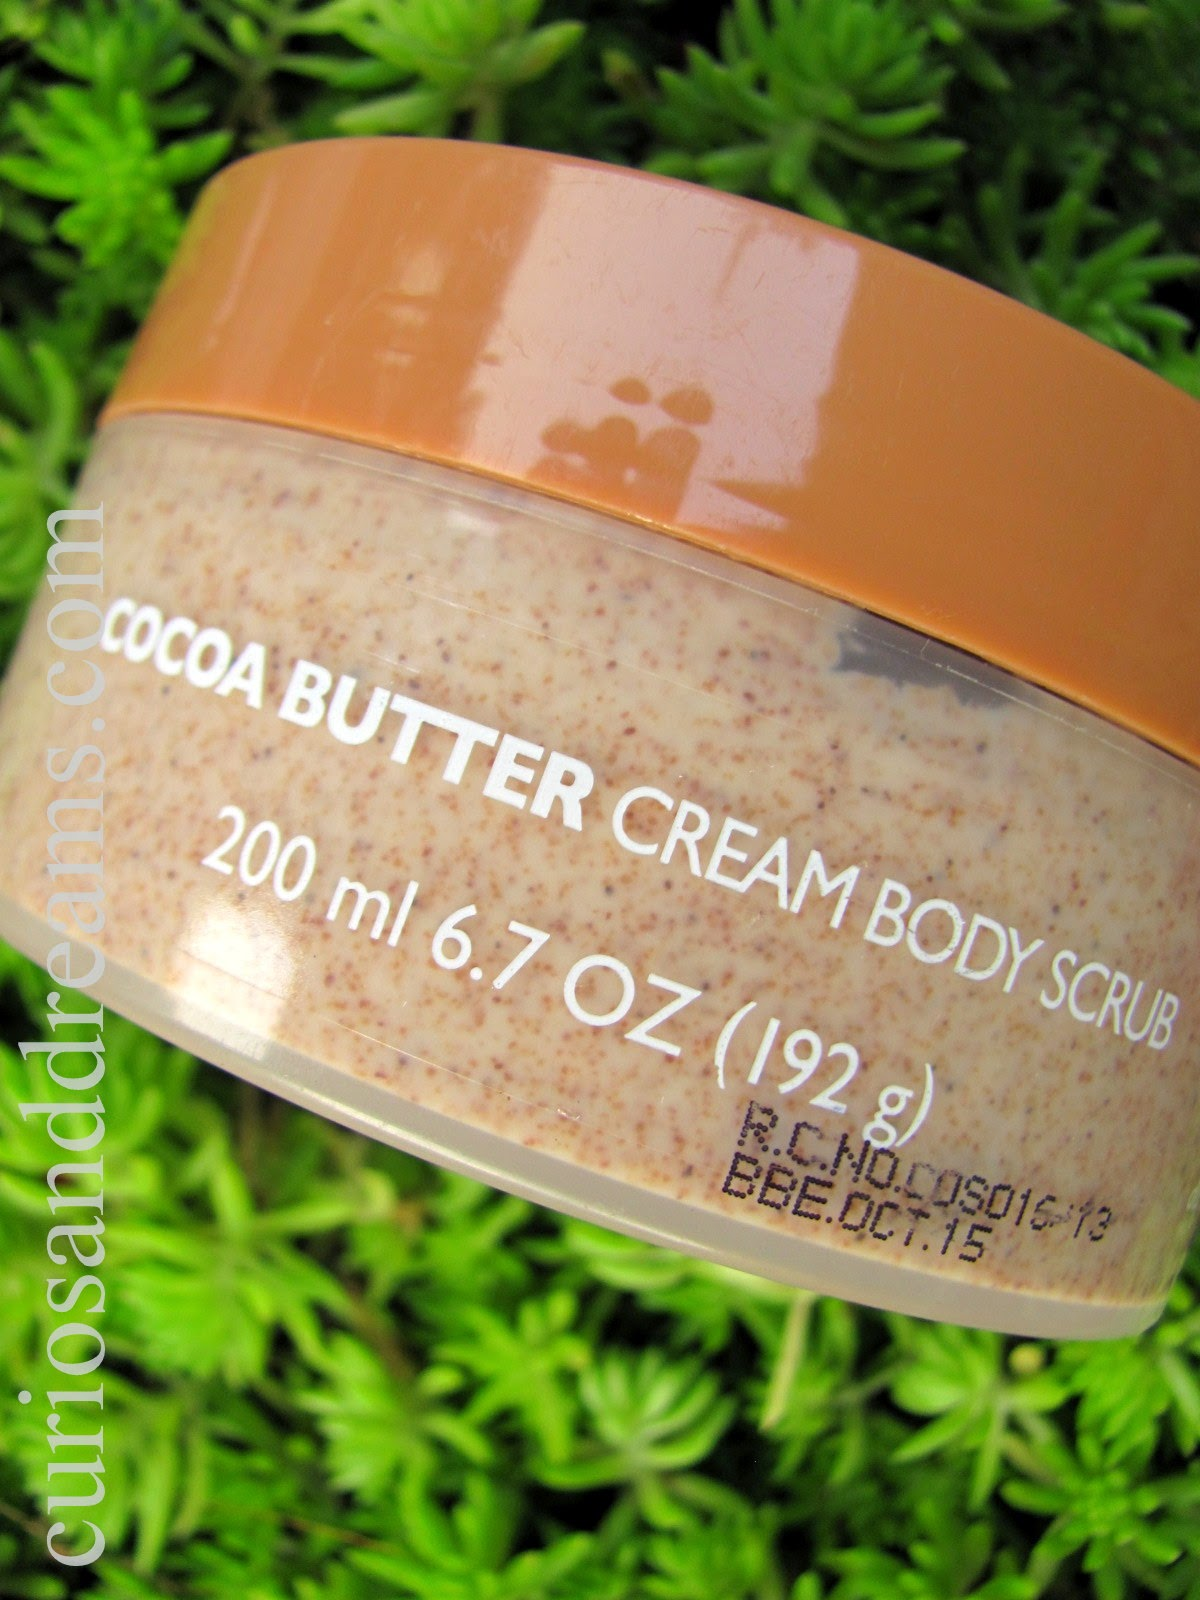 The Body Shop Cocoa Butter Cream Body Scrub Review, TBS Cocoa Butter Cream Body Scrub Review